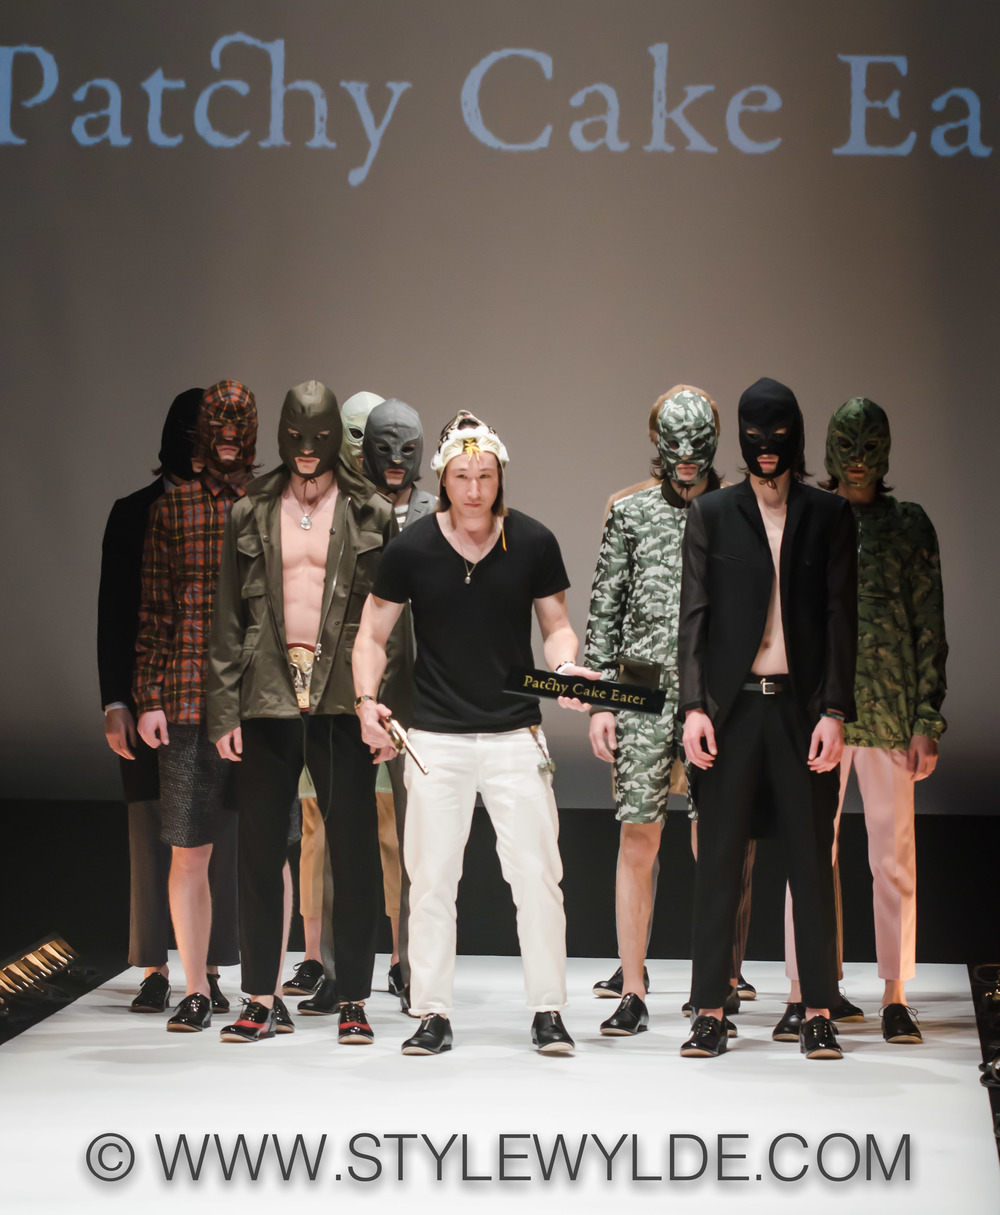 stylewylde_PatchyCakeEater_AW13_story (1 of 1)-22.jpg